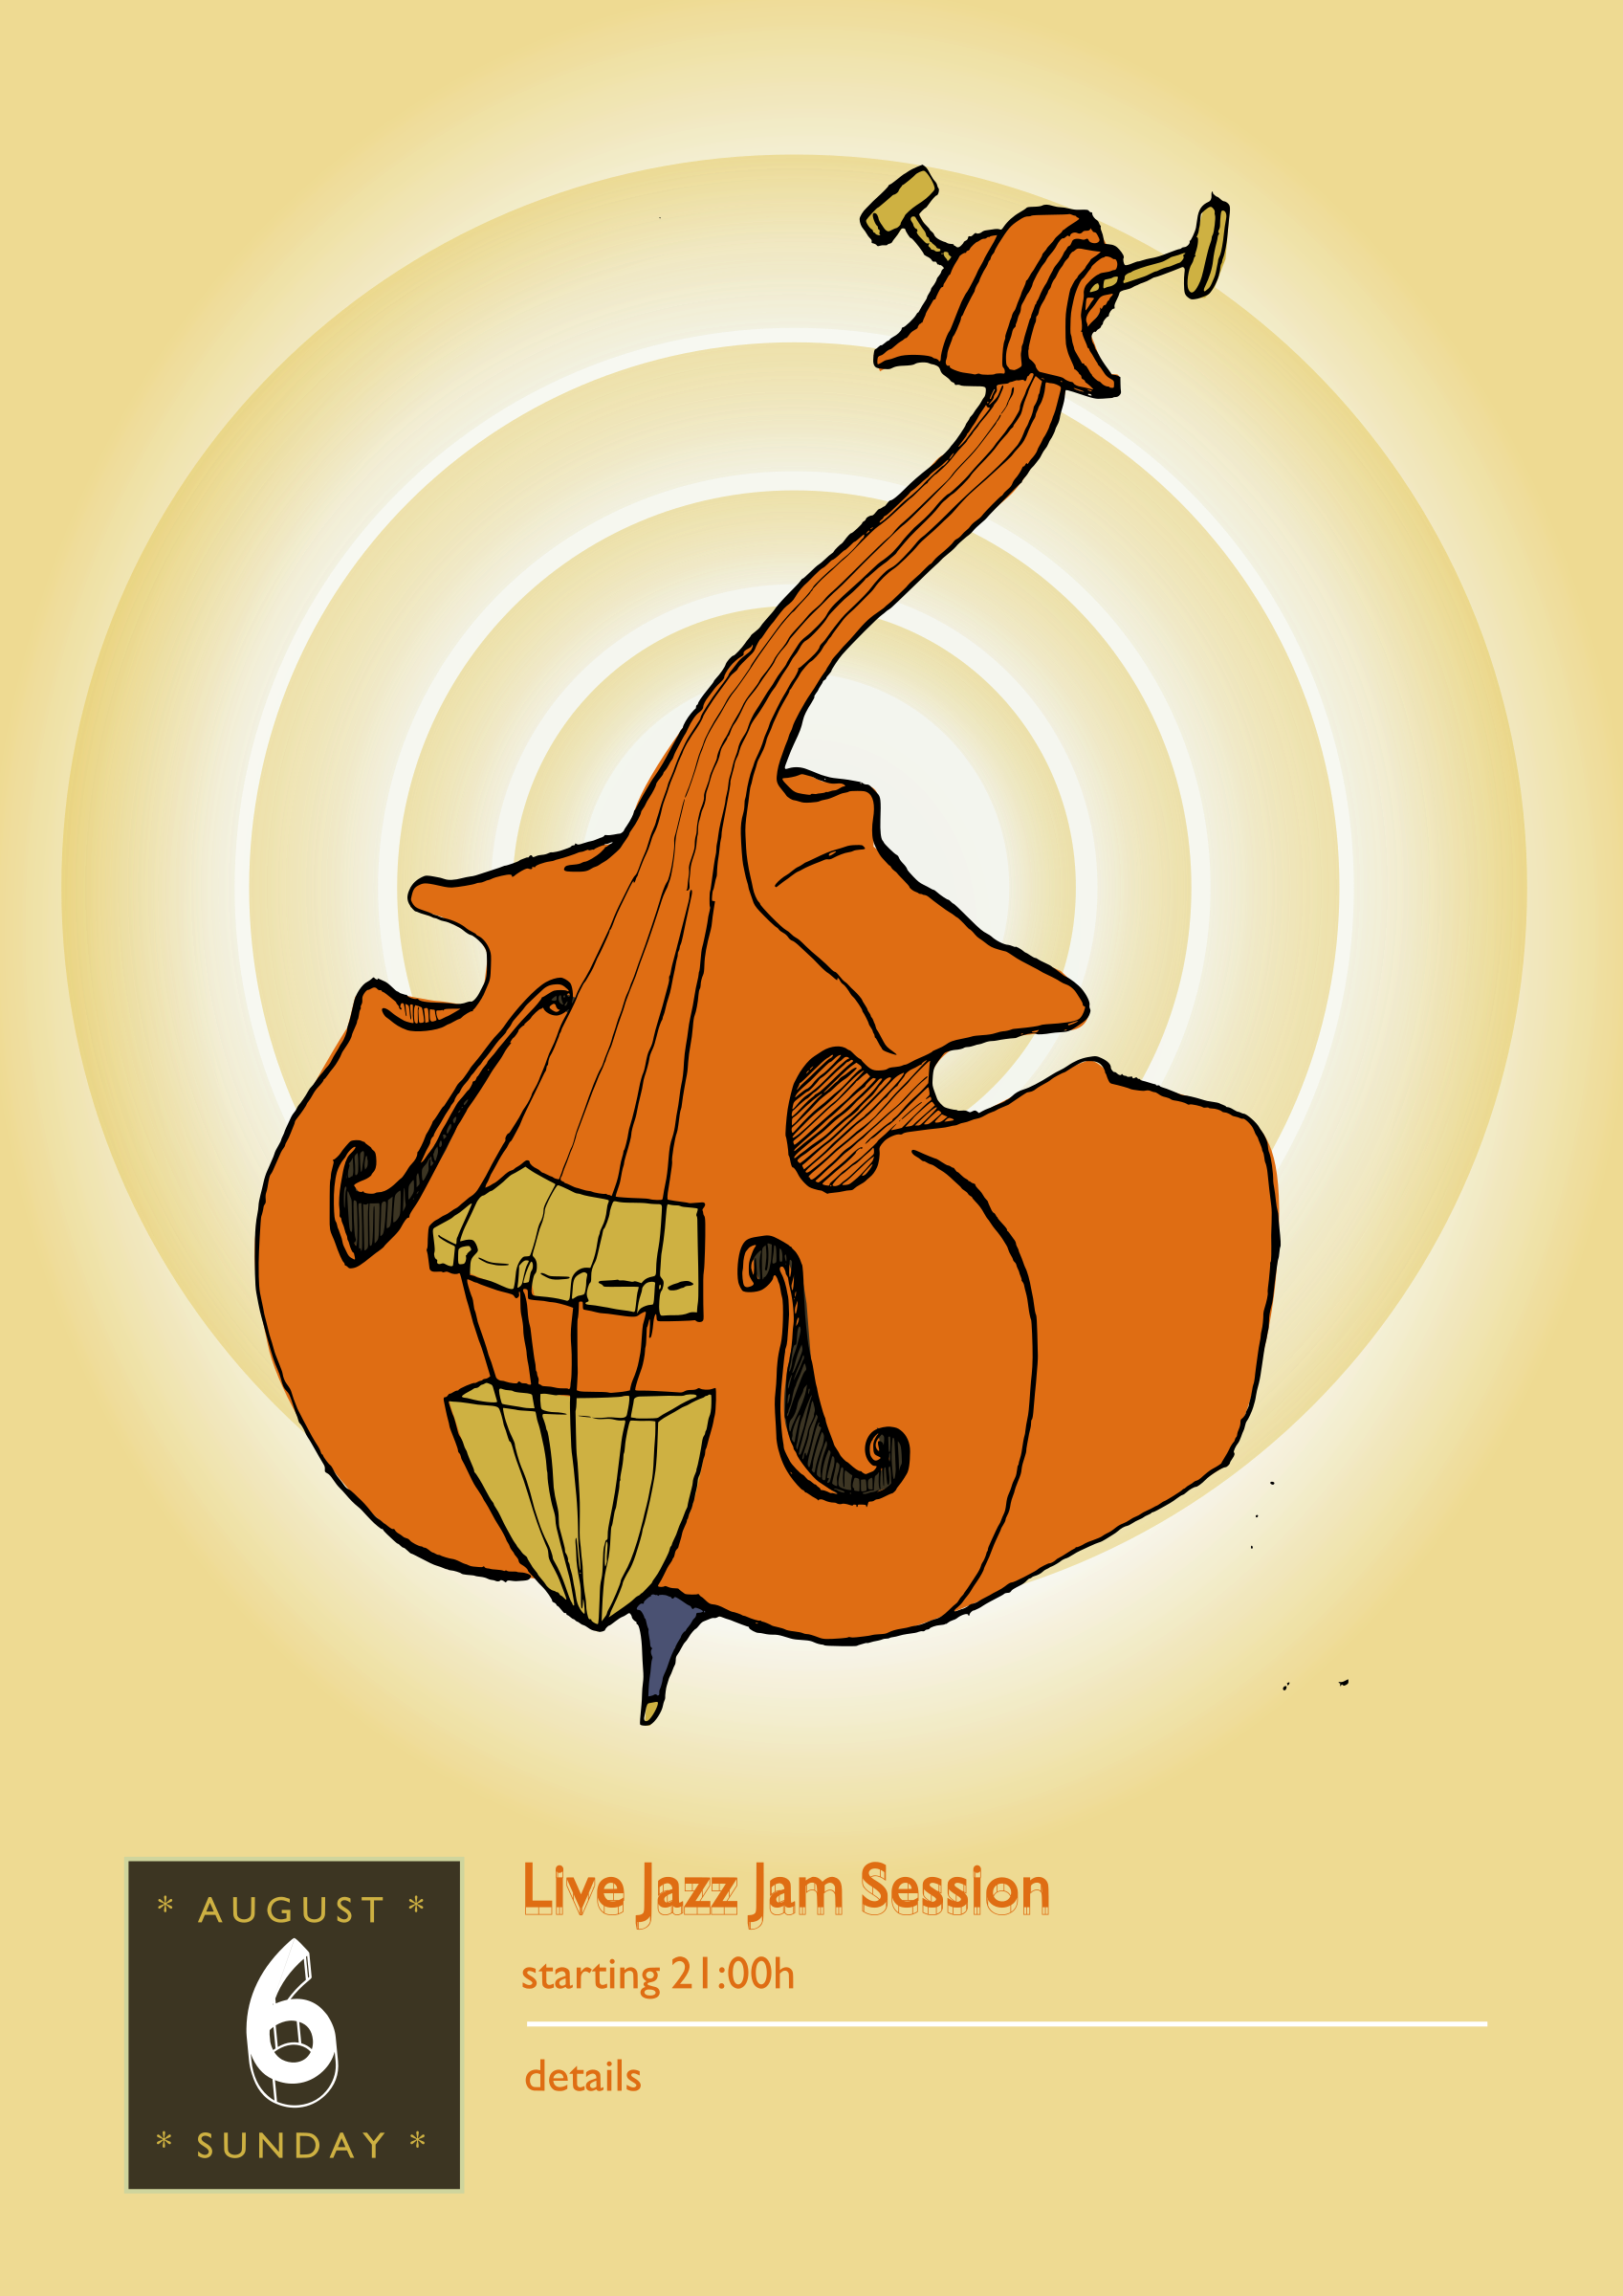 Piano clipart jam session. Jazz double bass big